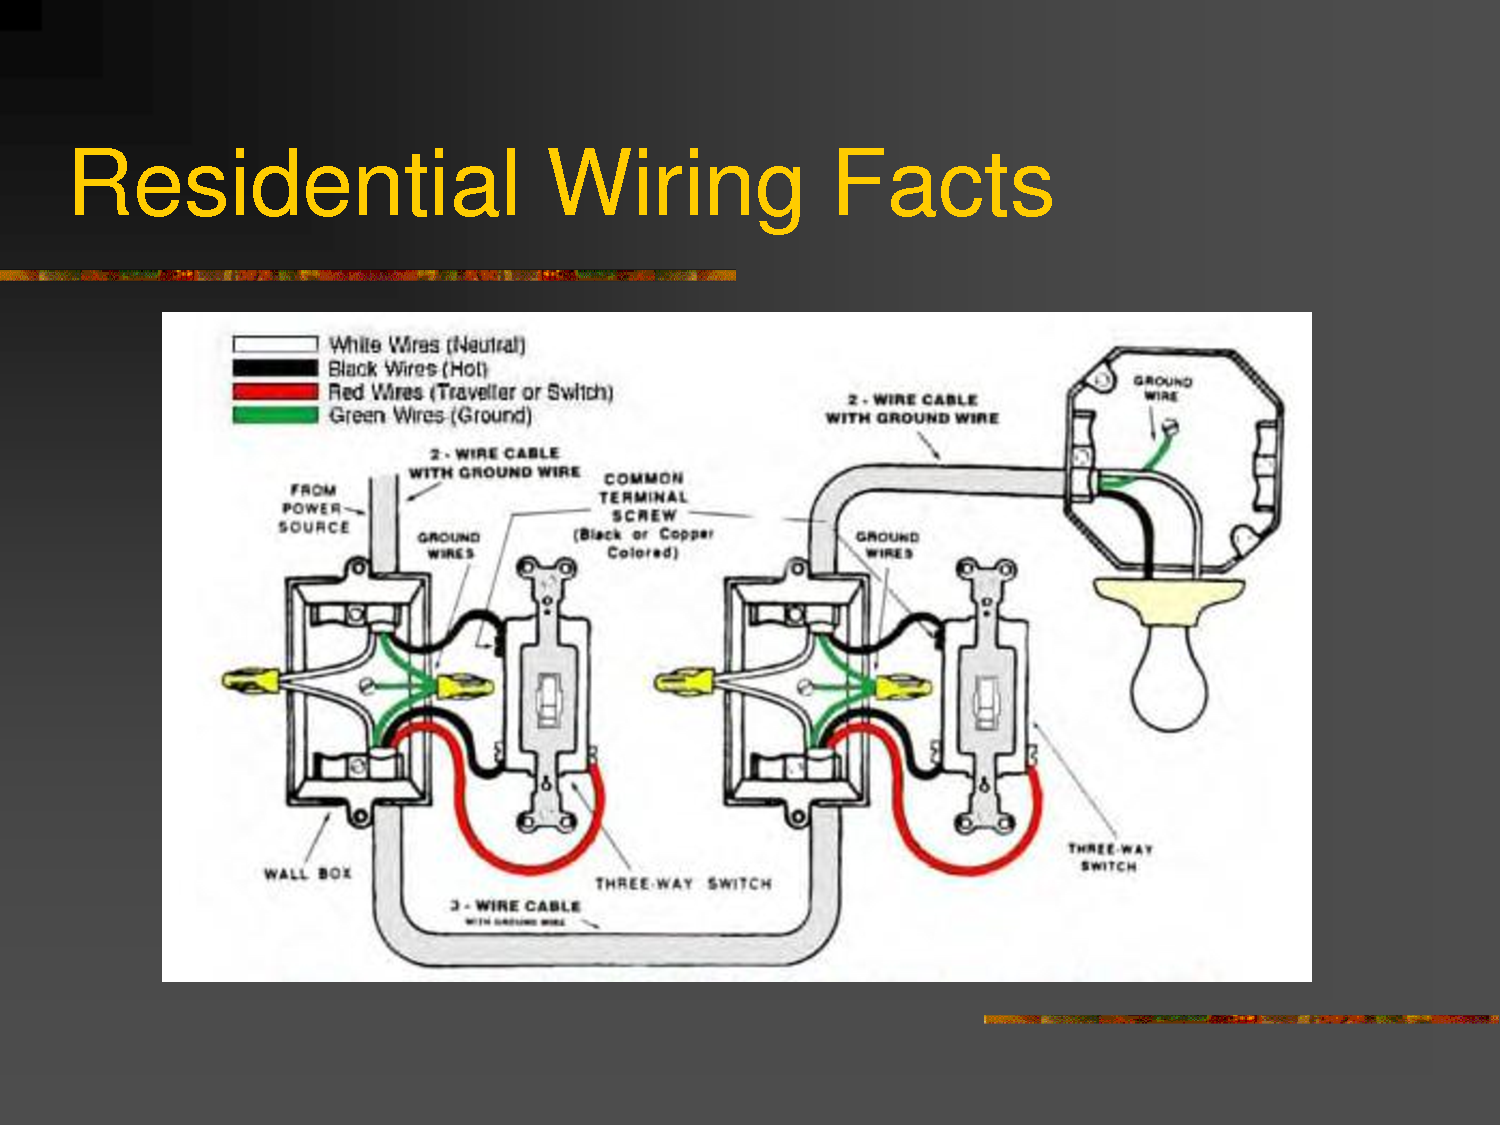 4 best images of residential wiring diagrams house electrical4 best images of residential wiring diagrams house electrical